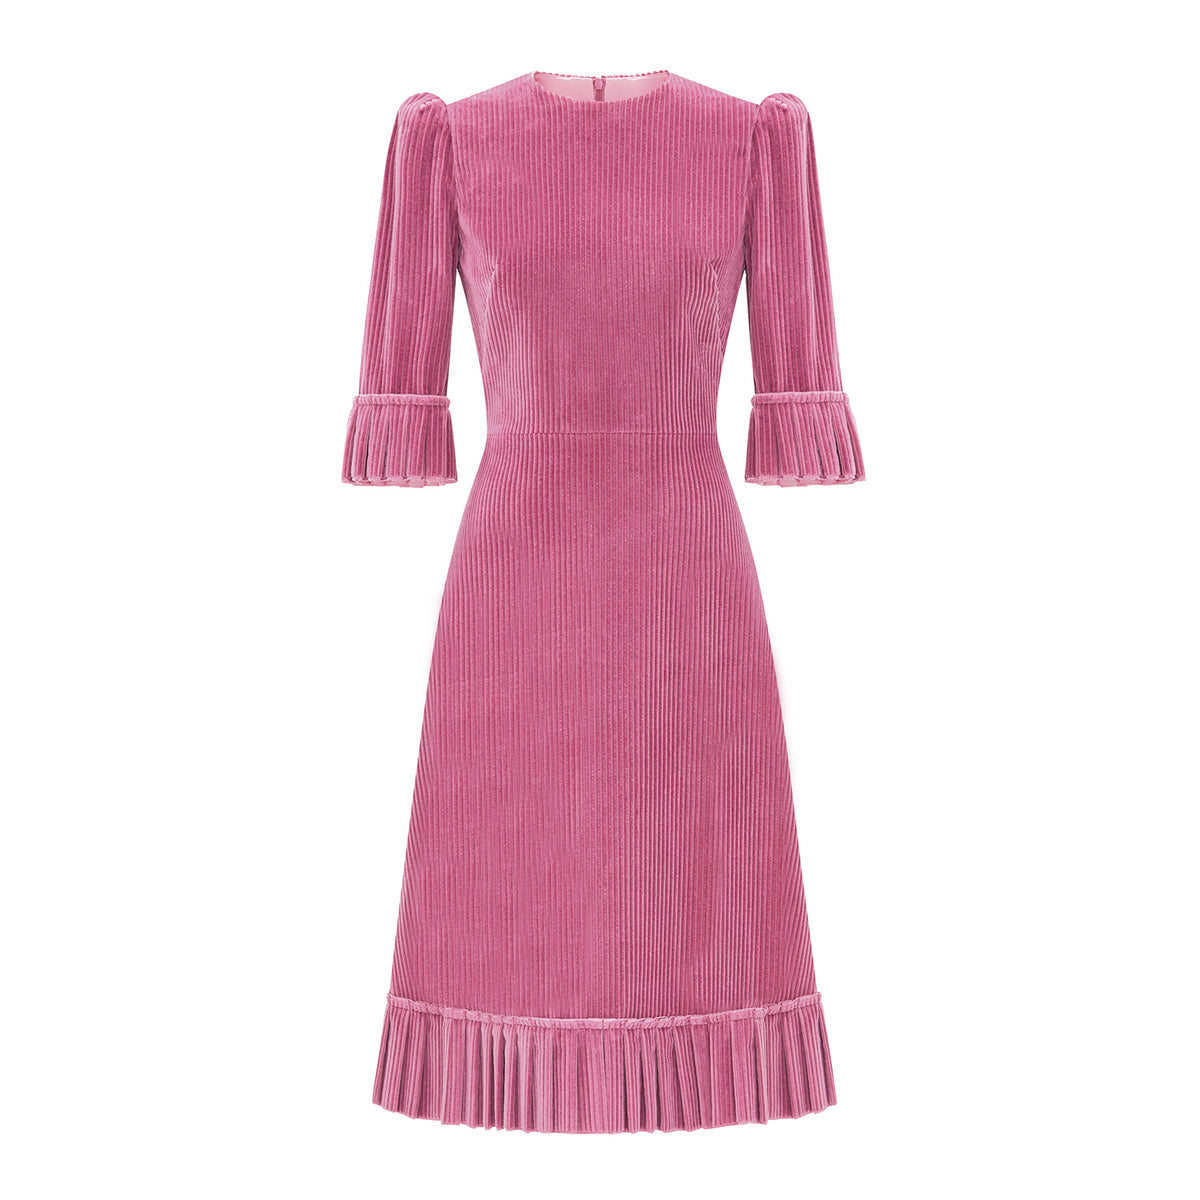 THE DUSTY ROSE CORDUROY DAY DRESS